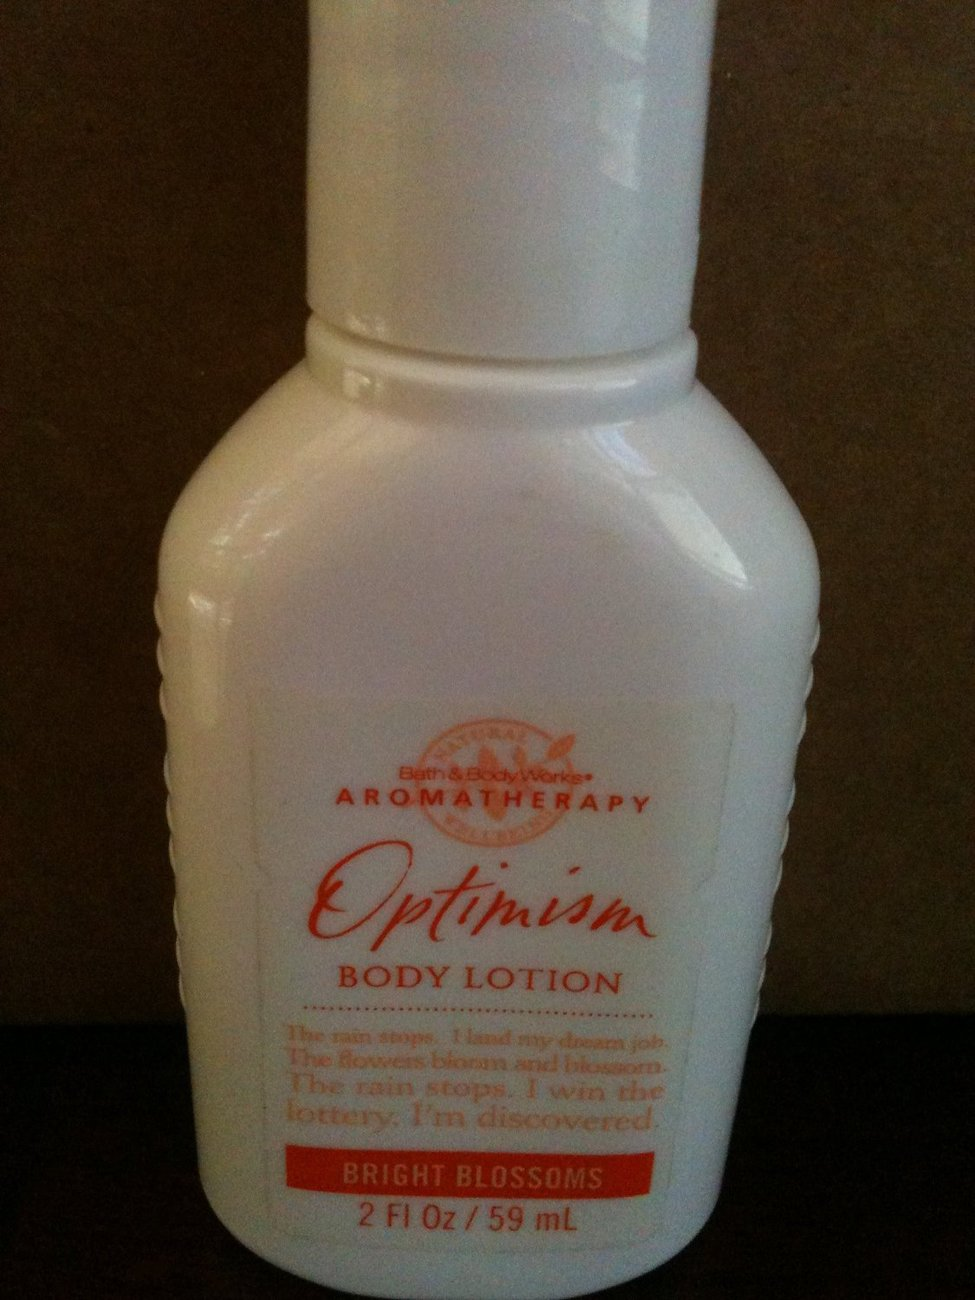 Bath & Body Works Aromatherapy OPTIMISM BRIGHT BLOSSOMS Body Lotion 2 fl oz / 59